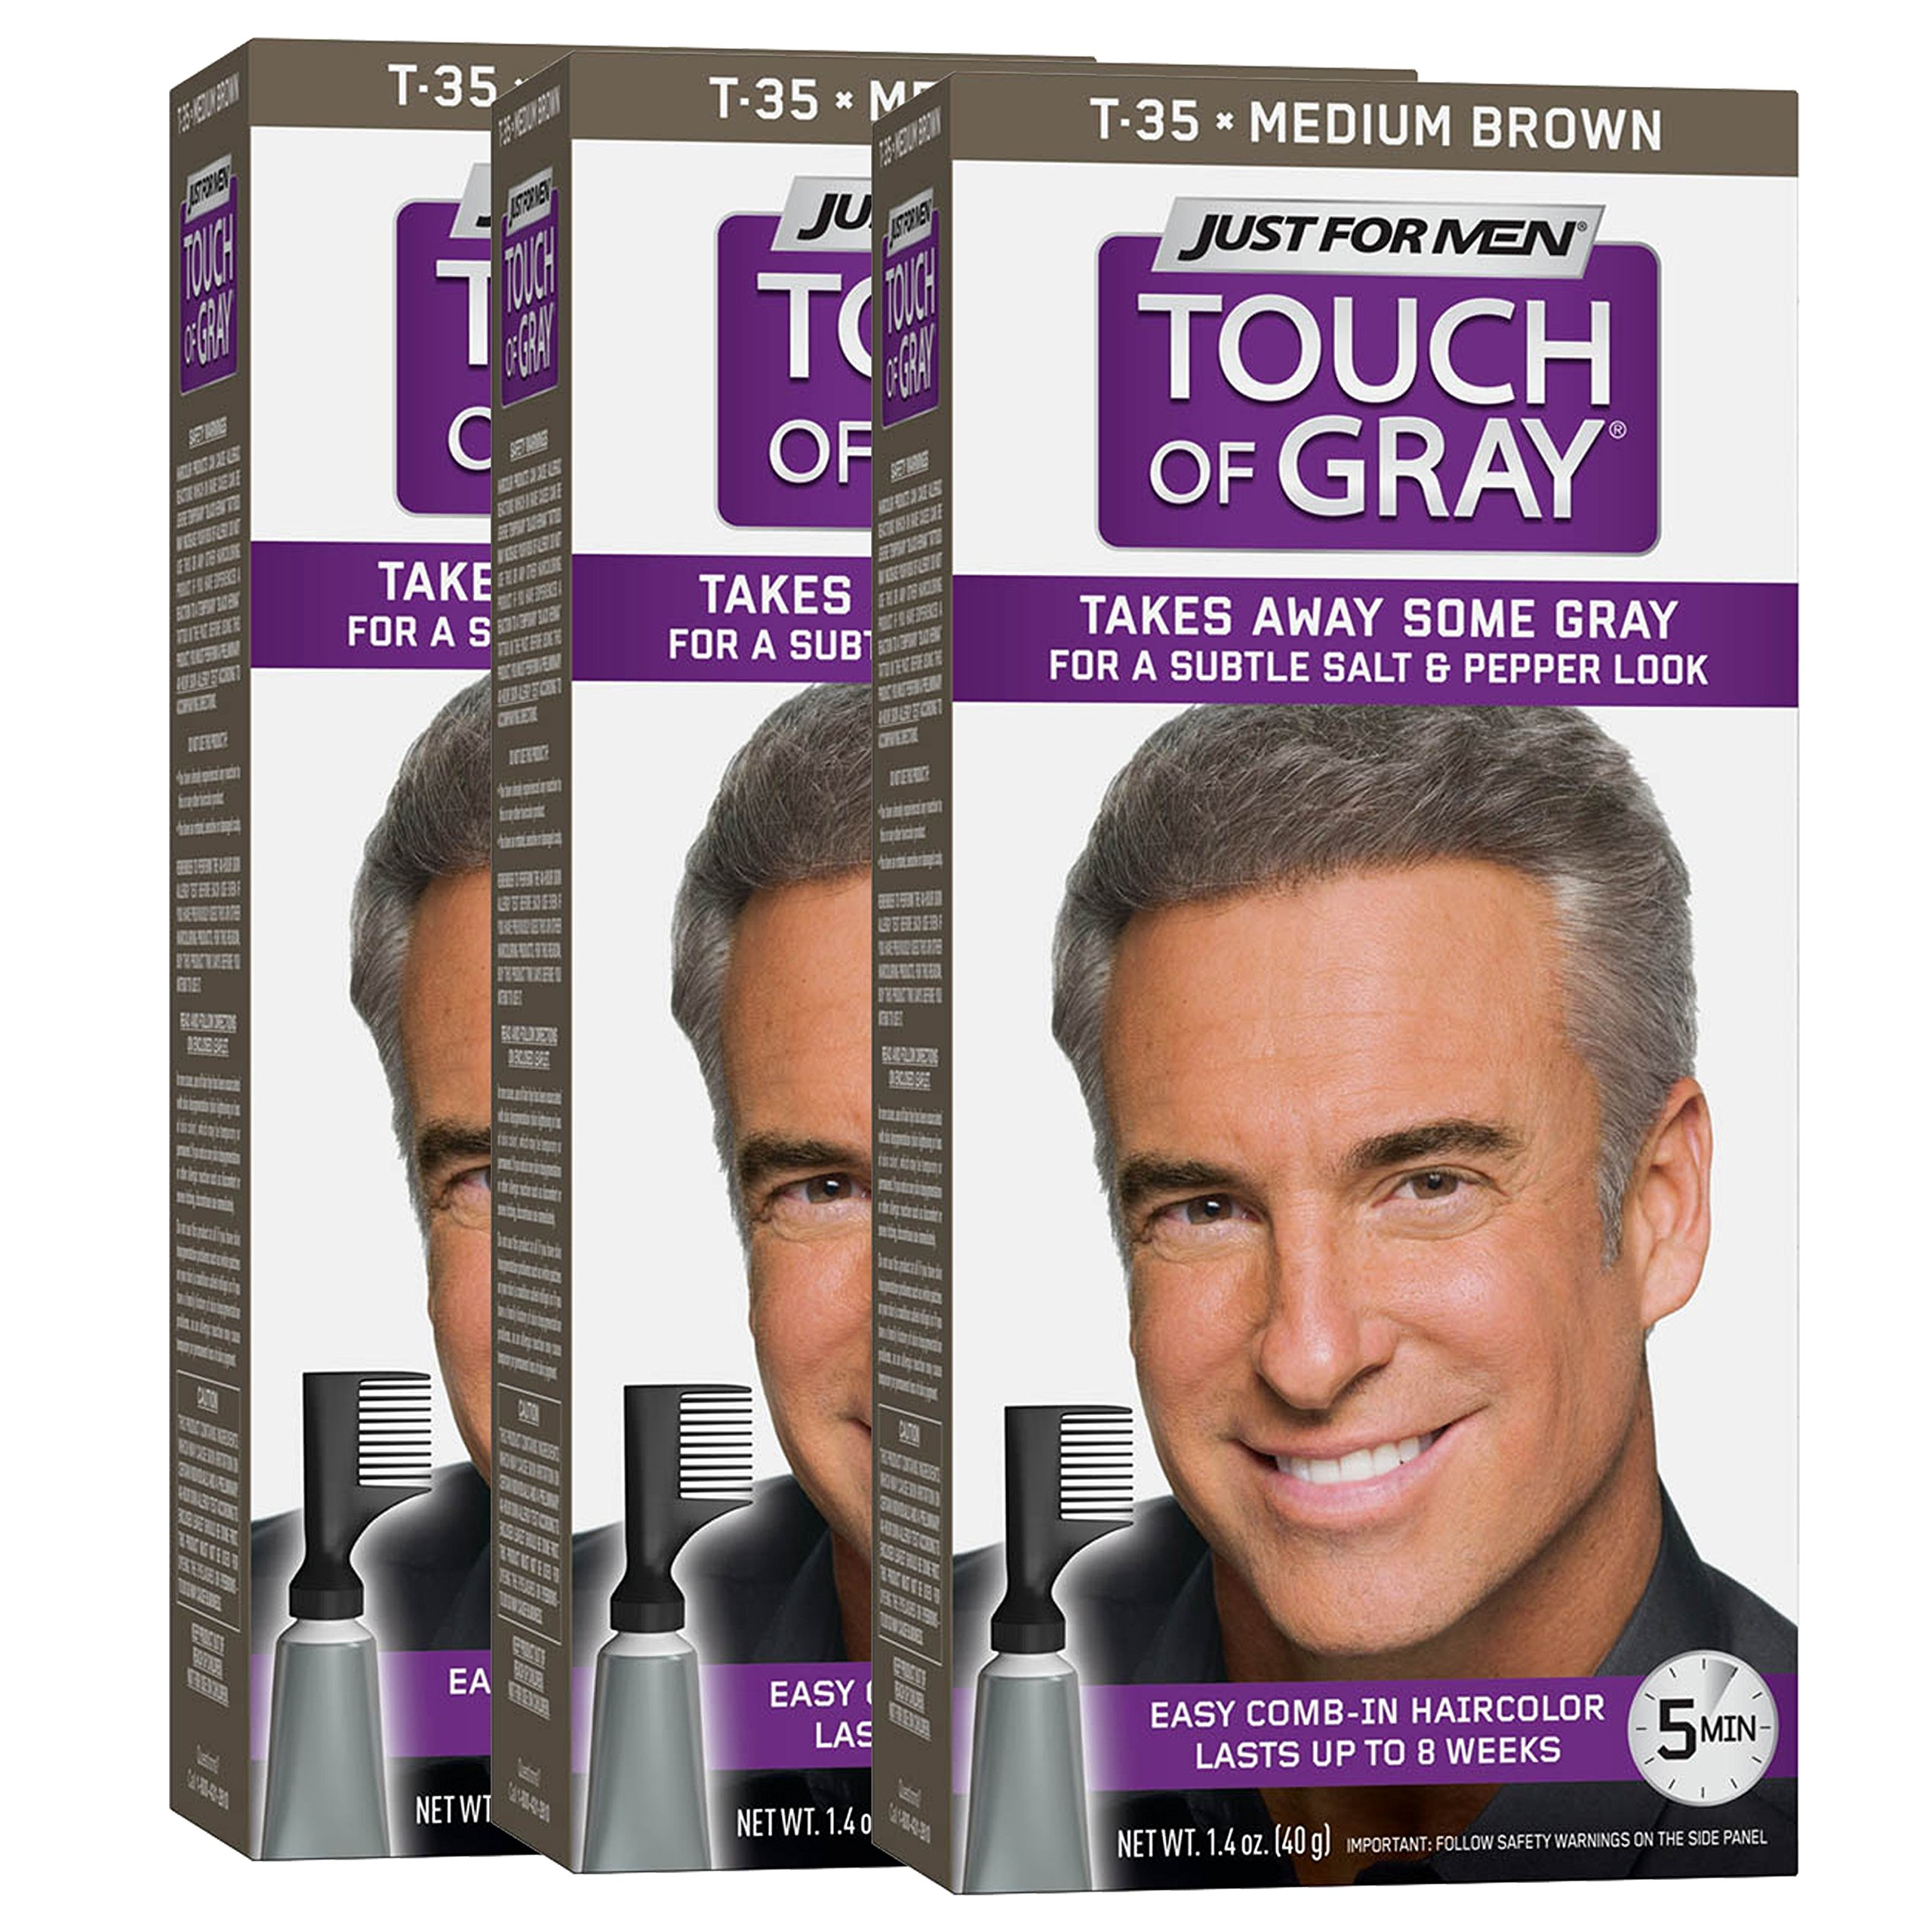 Just For Men Touch Of Gray Comb-In Men's Hair Color, Medium Brown (Pack of 3) by Just for Men